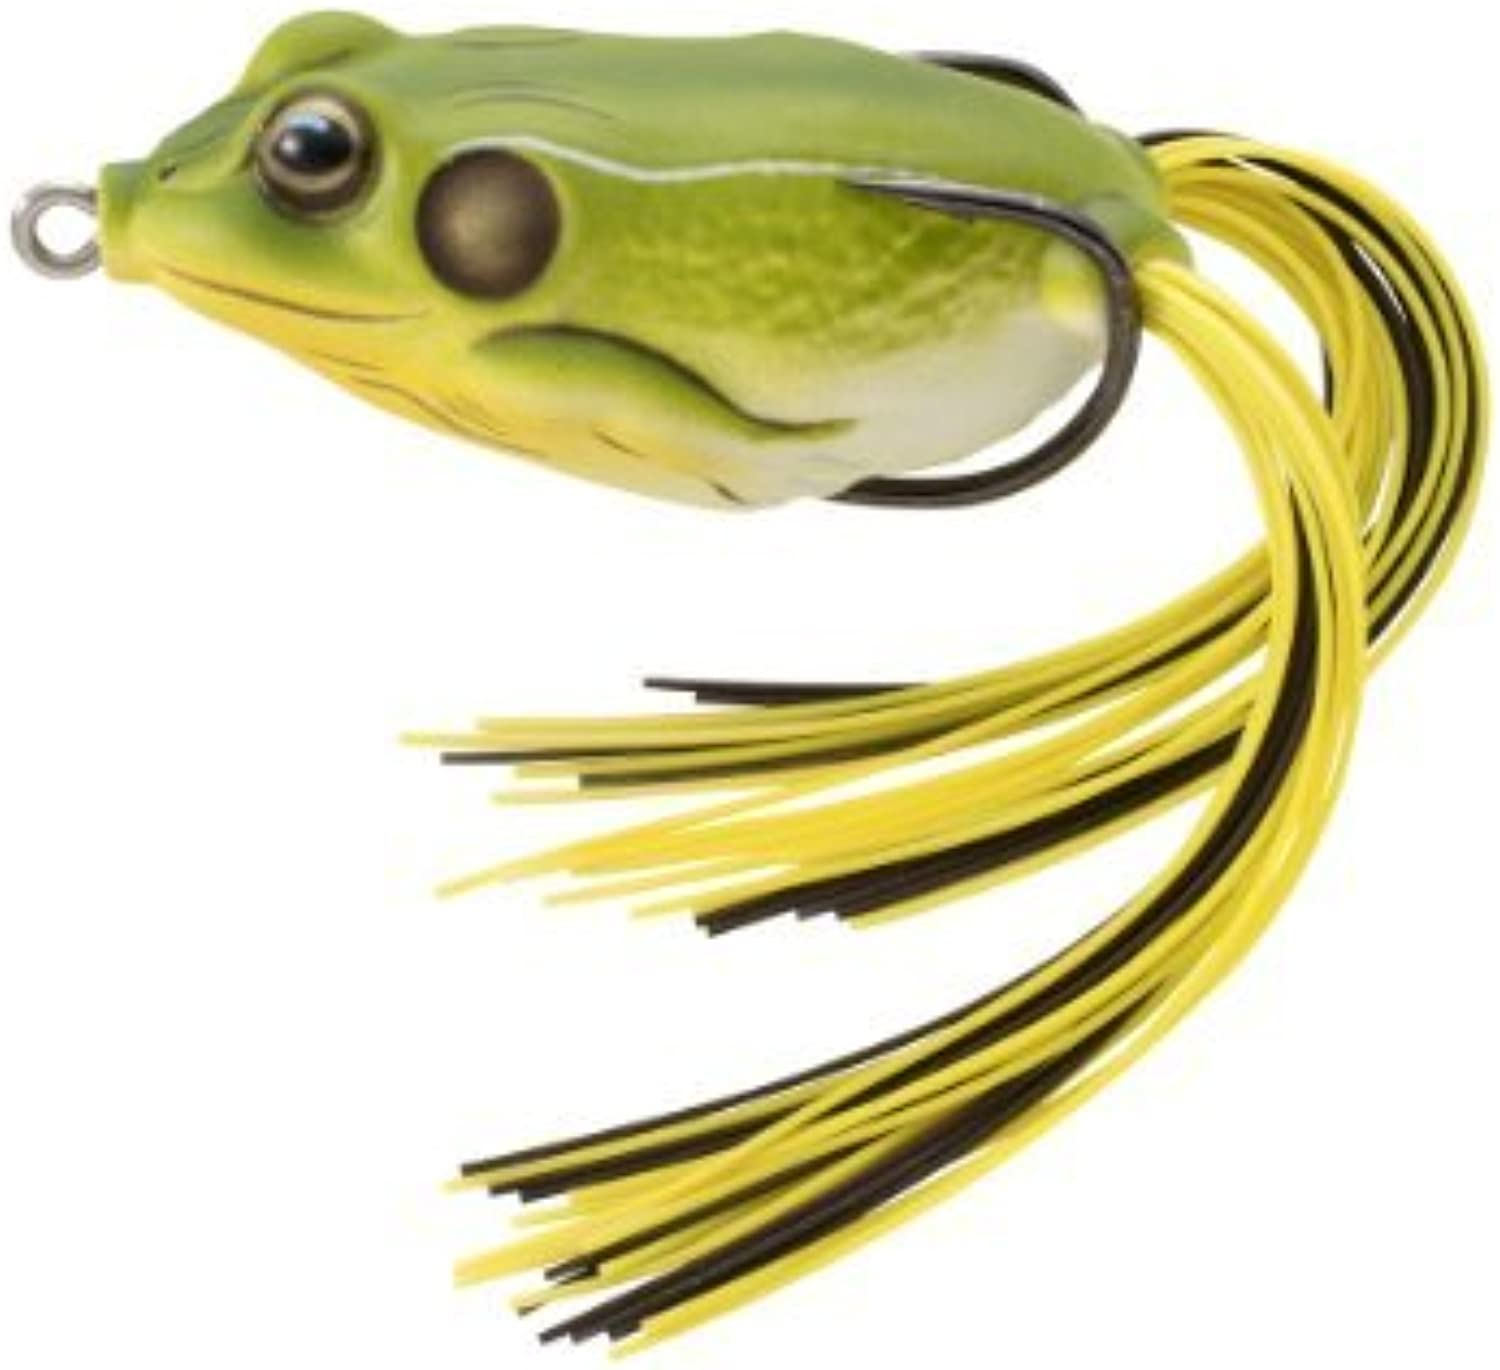 Koppers Floating Frog Hollow Body Lure, 25 8Inch, 3 4Ounce, Bright Green by Unknown